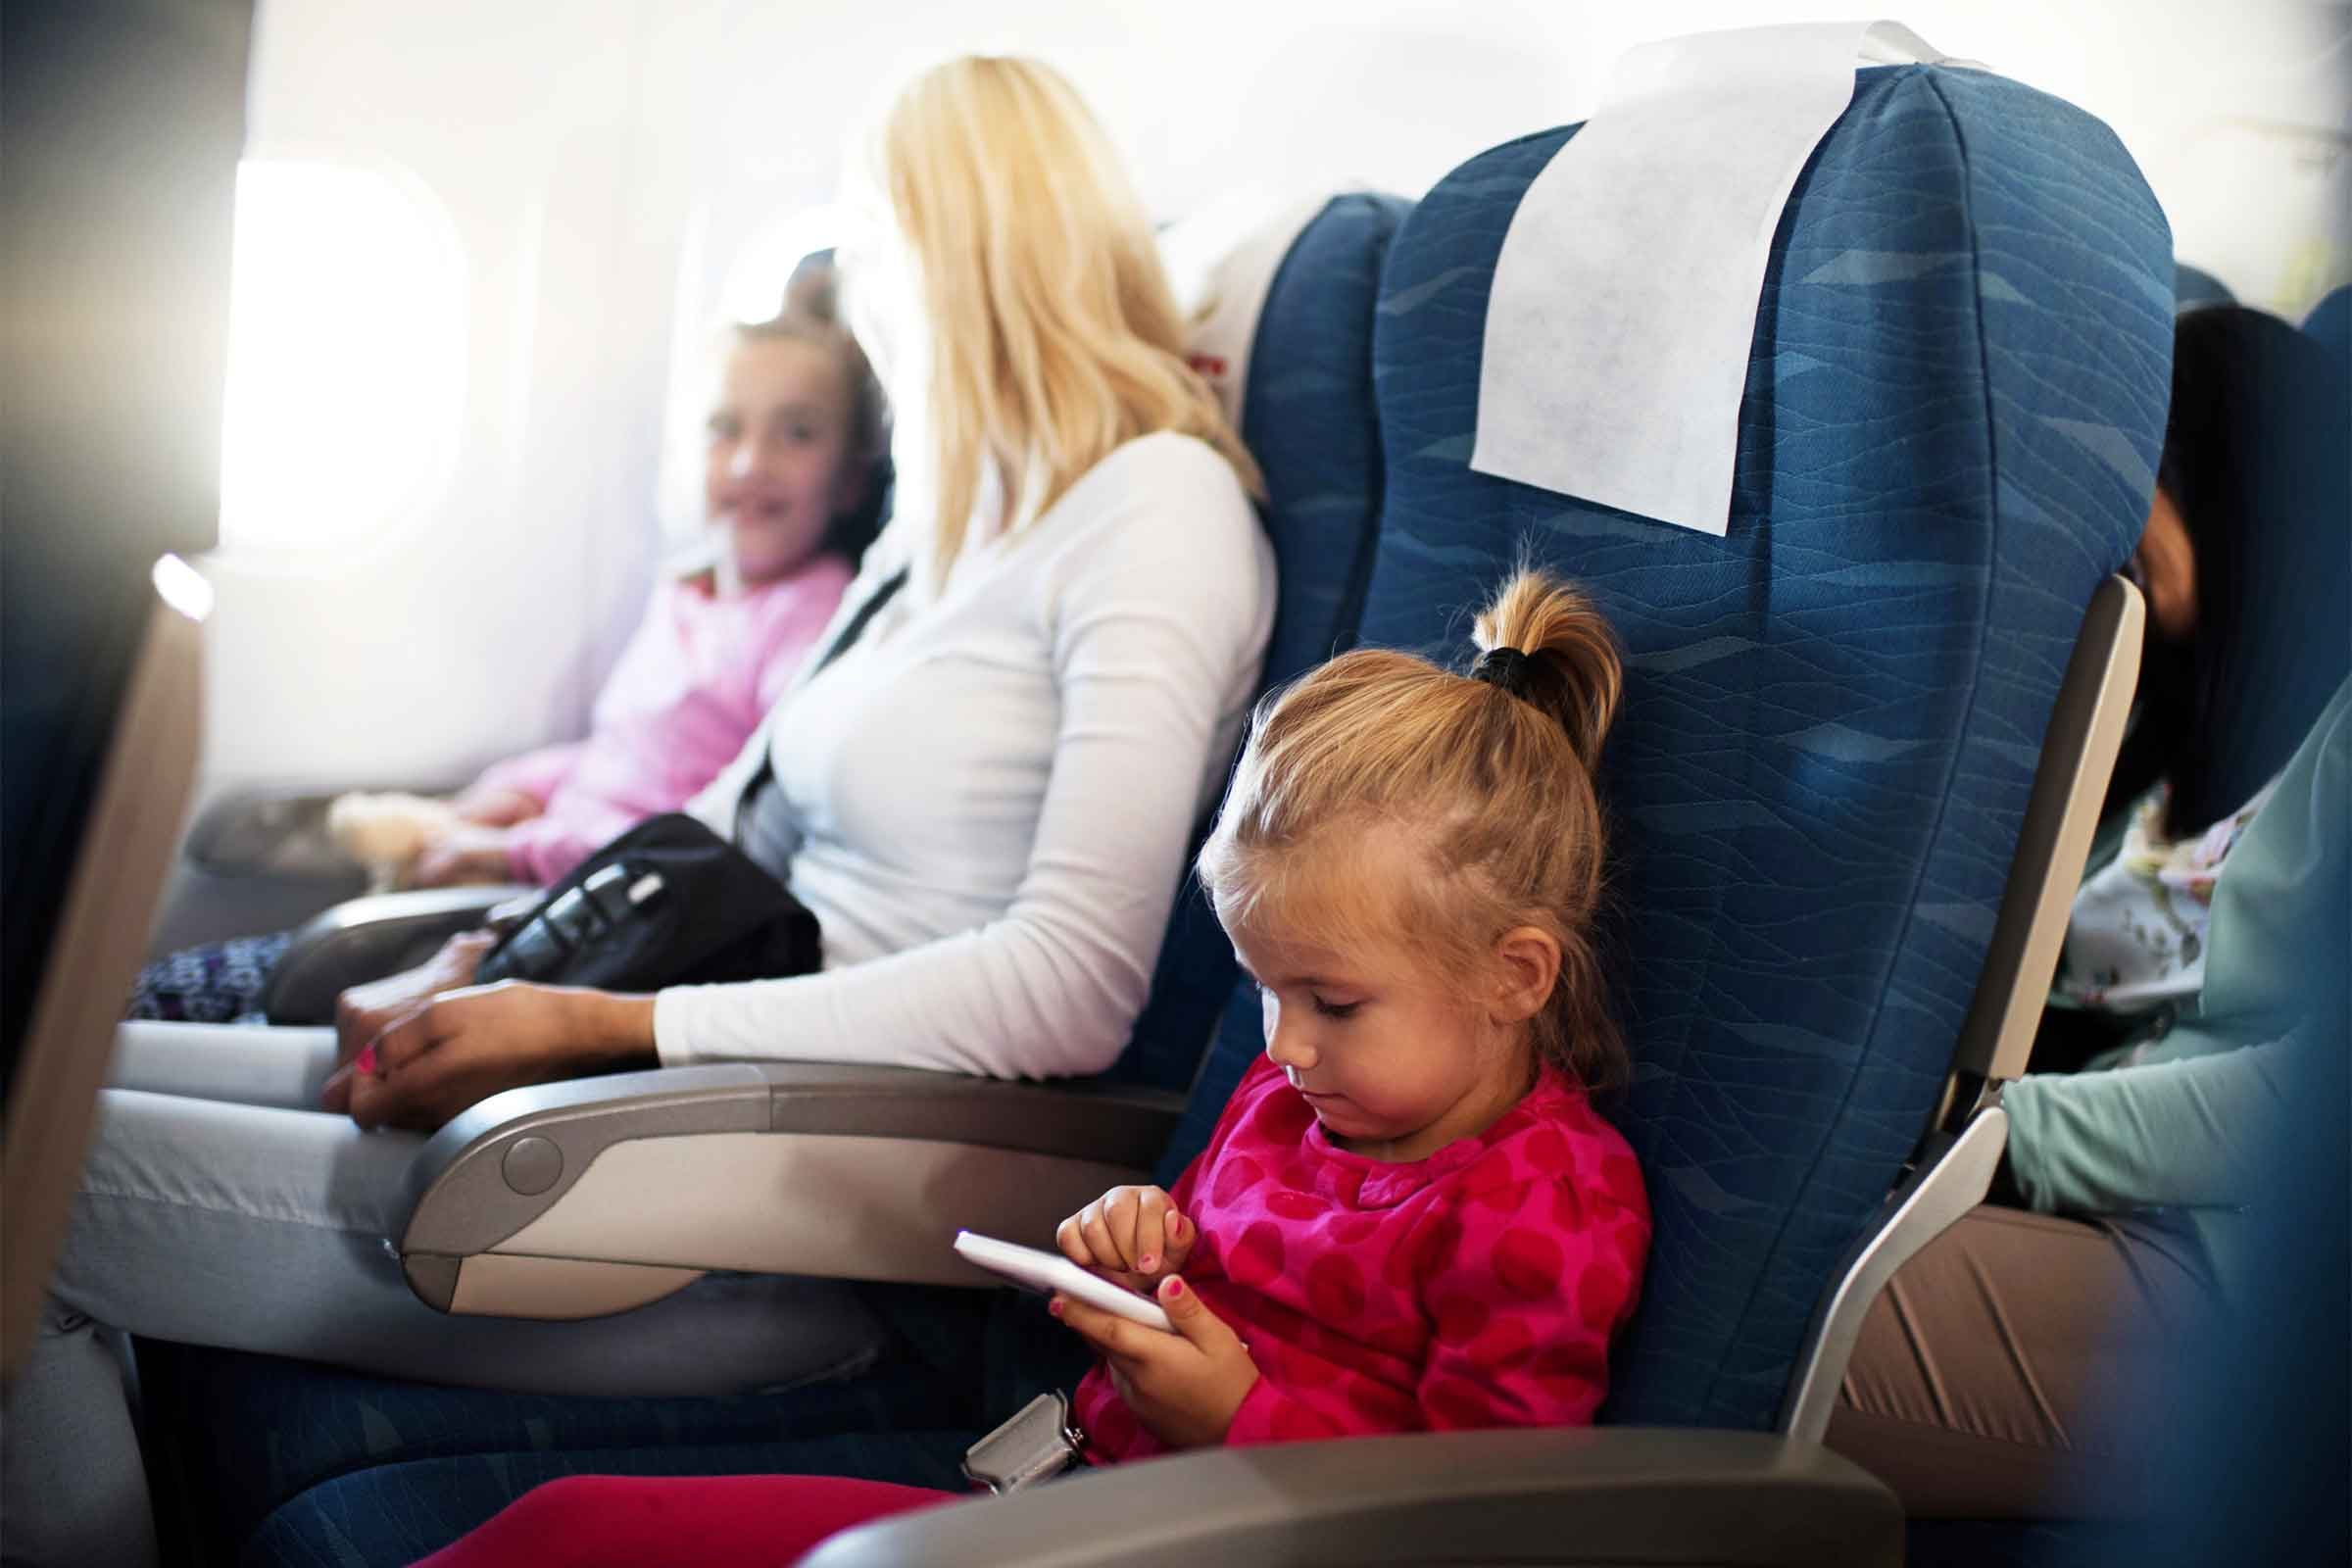 Airplane Etiquette Rules For Flying On An Airplane